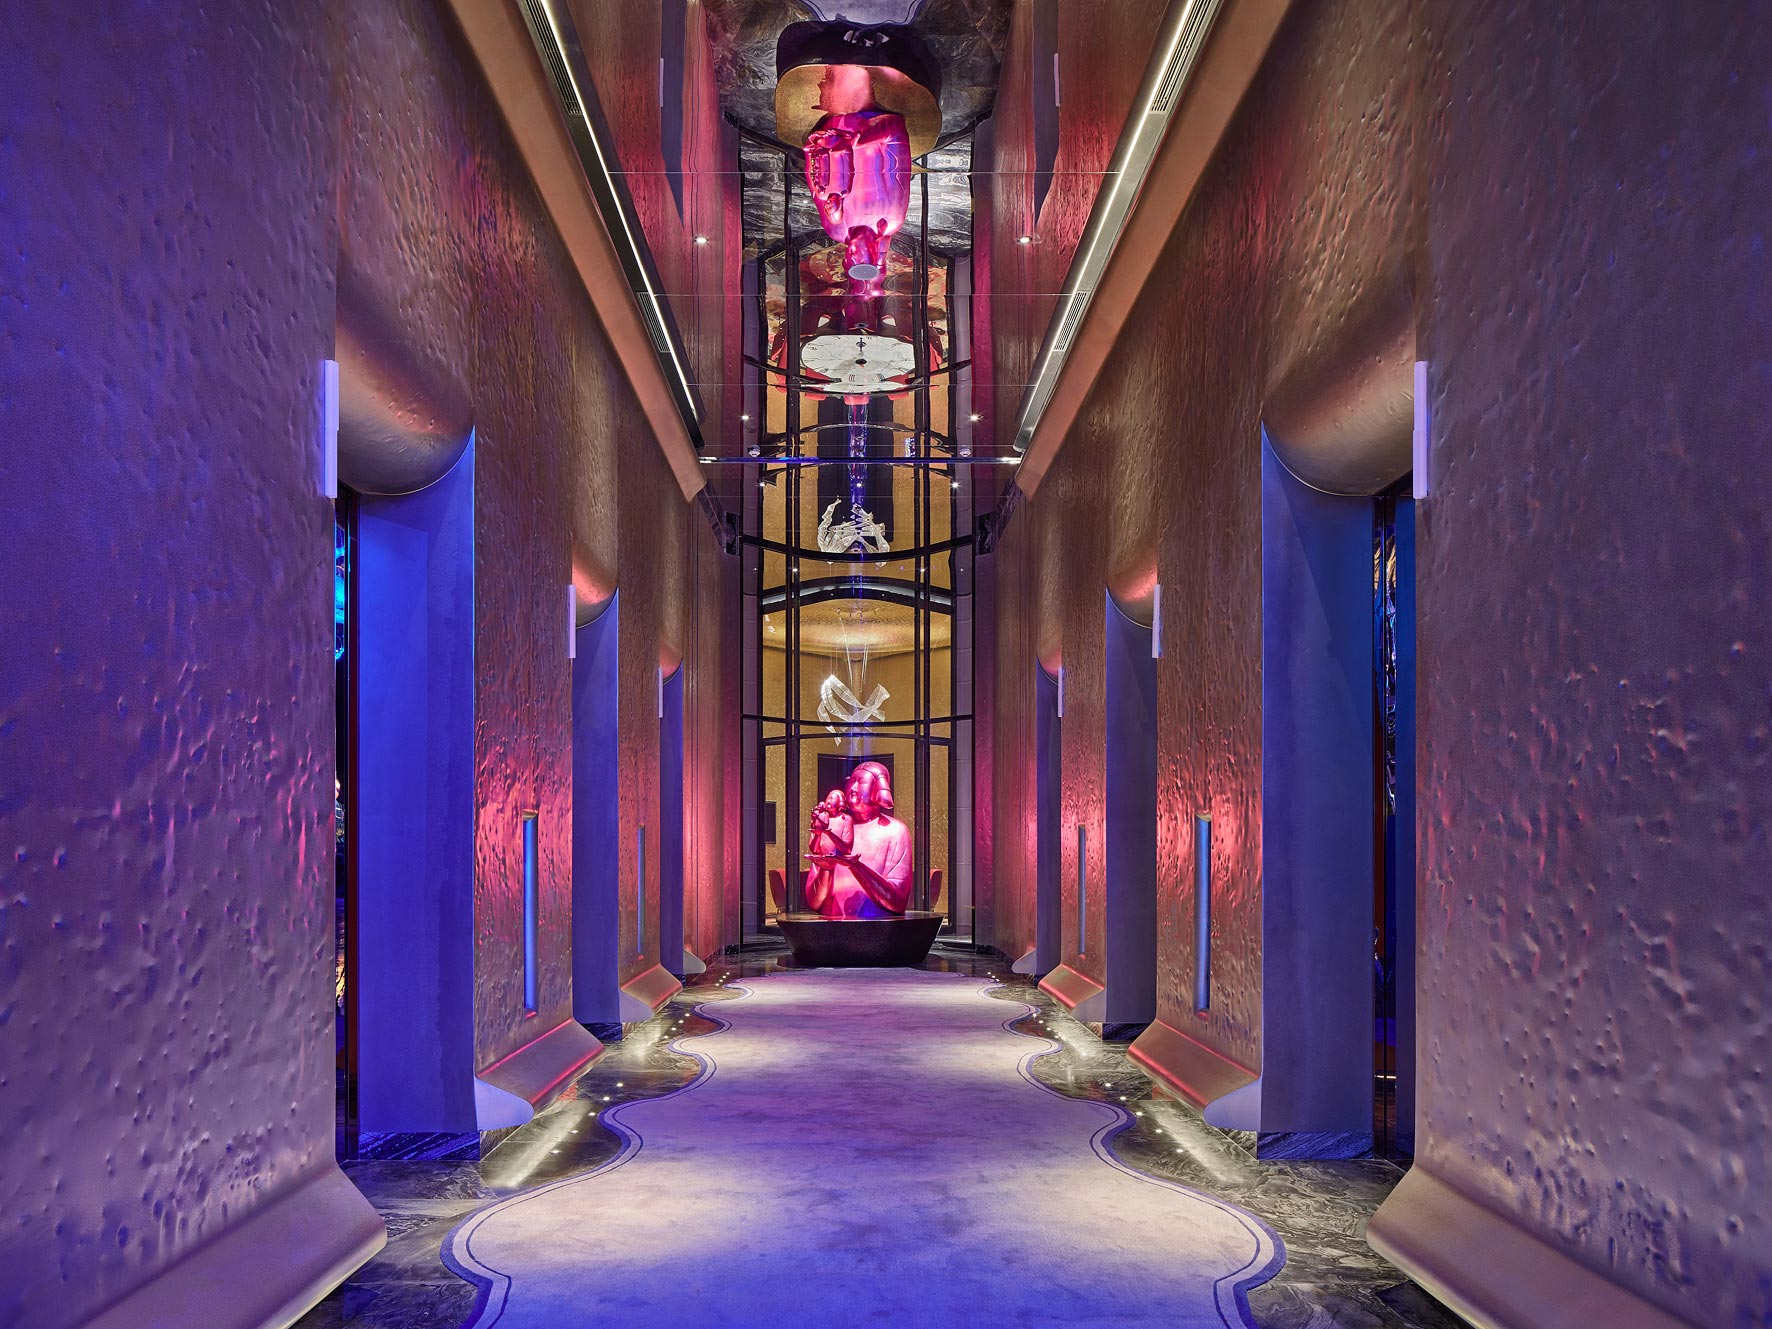 W Hotel Xian, China. Architectural photographer Singapore